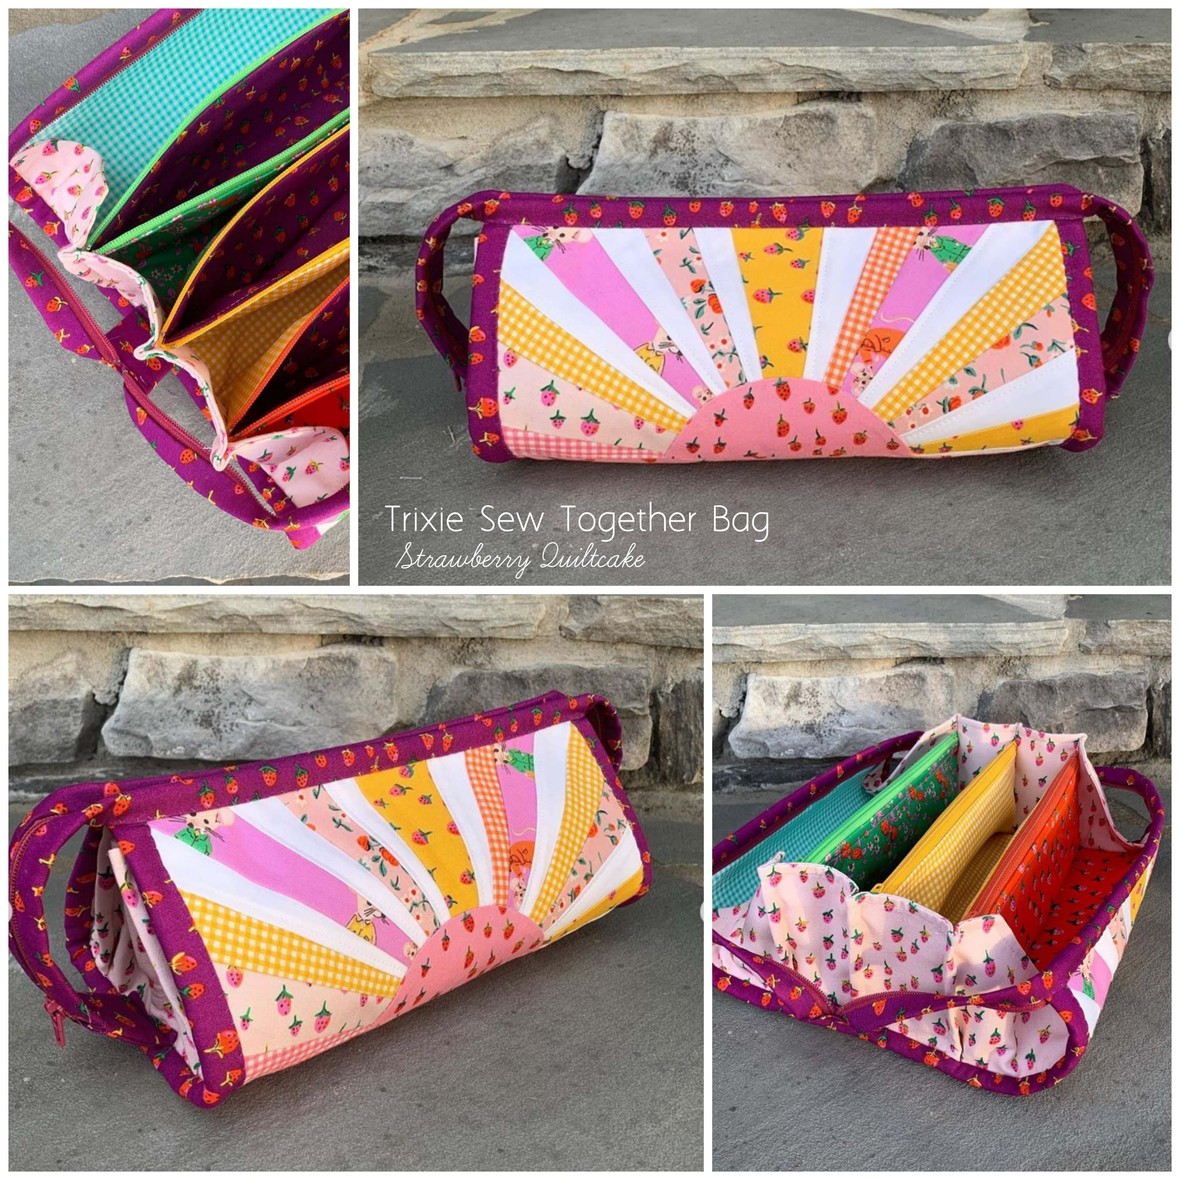 Sew together Bag Trixie